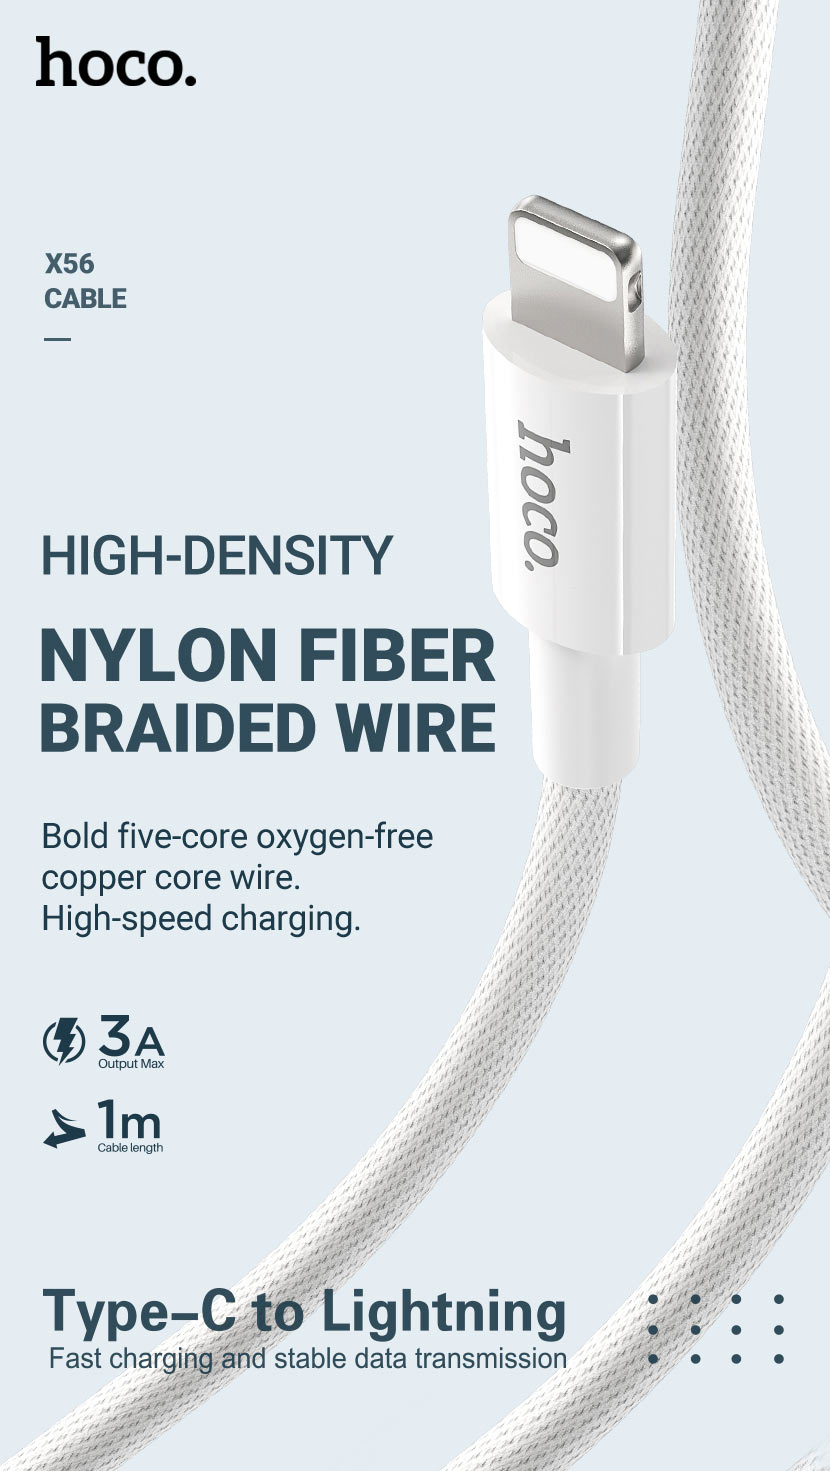 hoco news x56 new original pd charging data cable lightning braid en